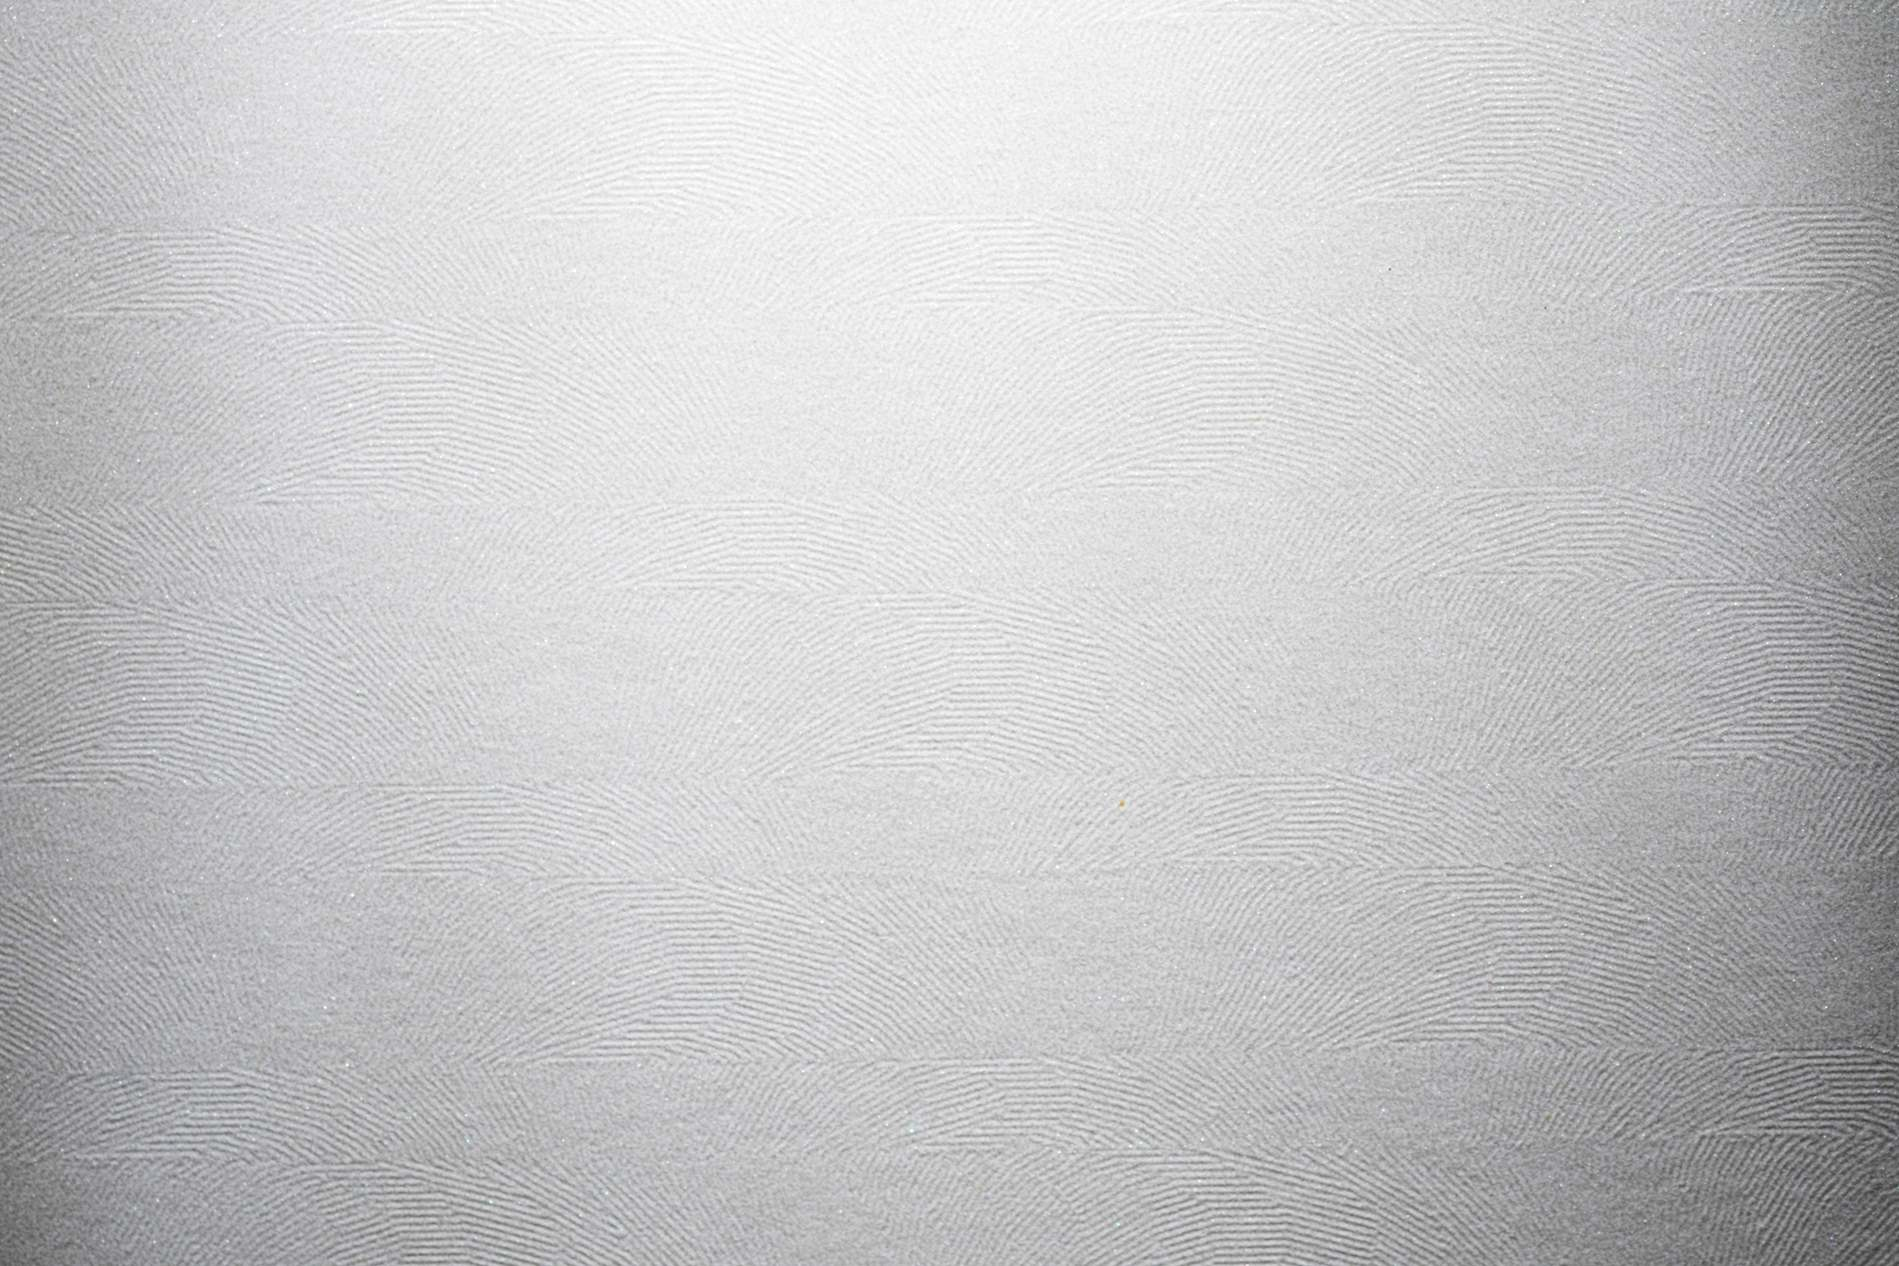 clean white textured paper photohdx